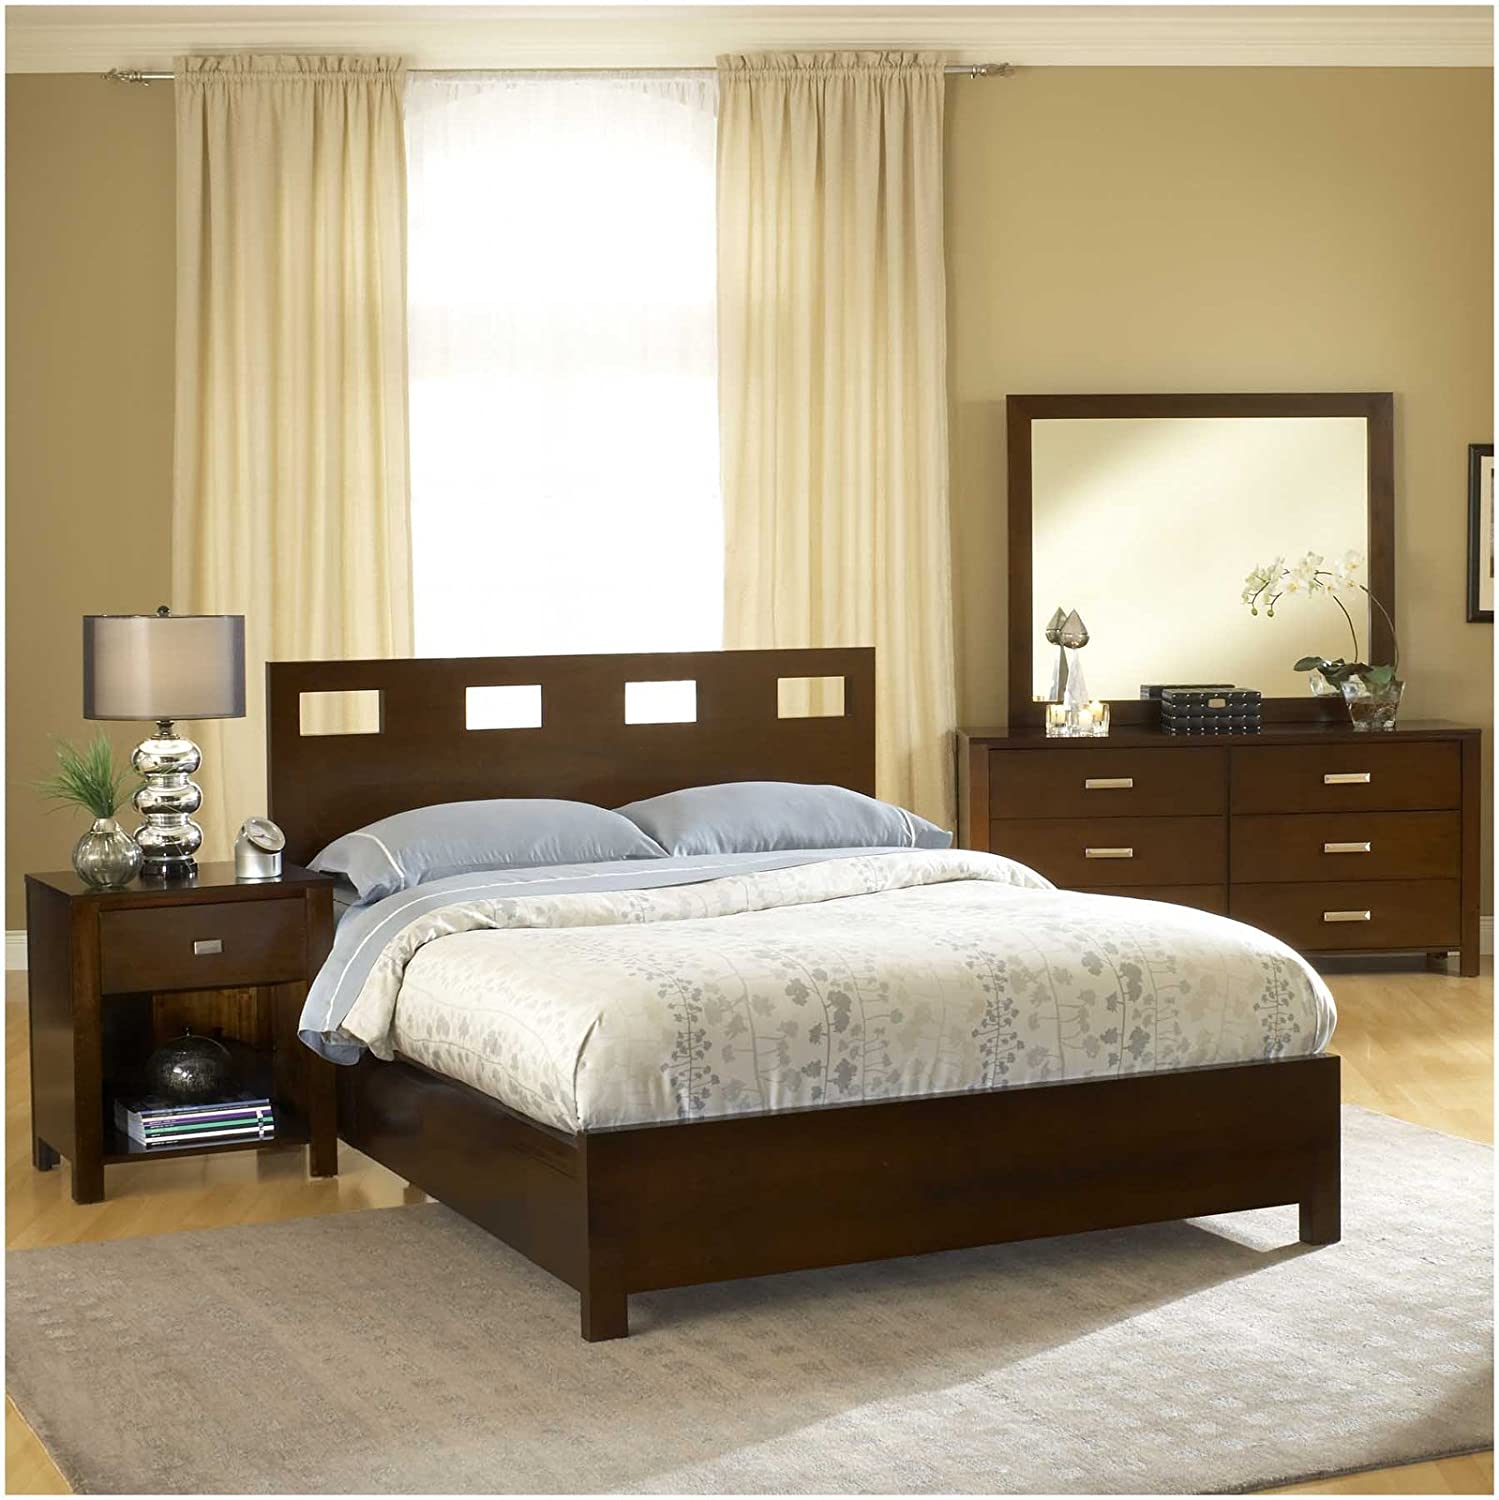 modus bedroom furniture modus urban. Amazon.com: Modus Furniture RV26F7 Riva Platform Bed, King, Chocolate Brown: Kitchen \u0026 Dining Bedroom Urban